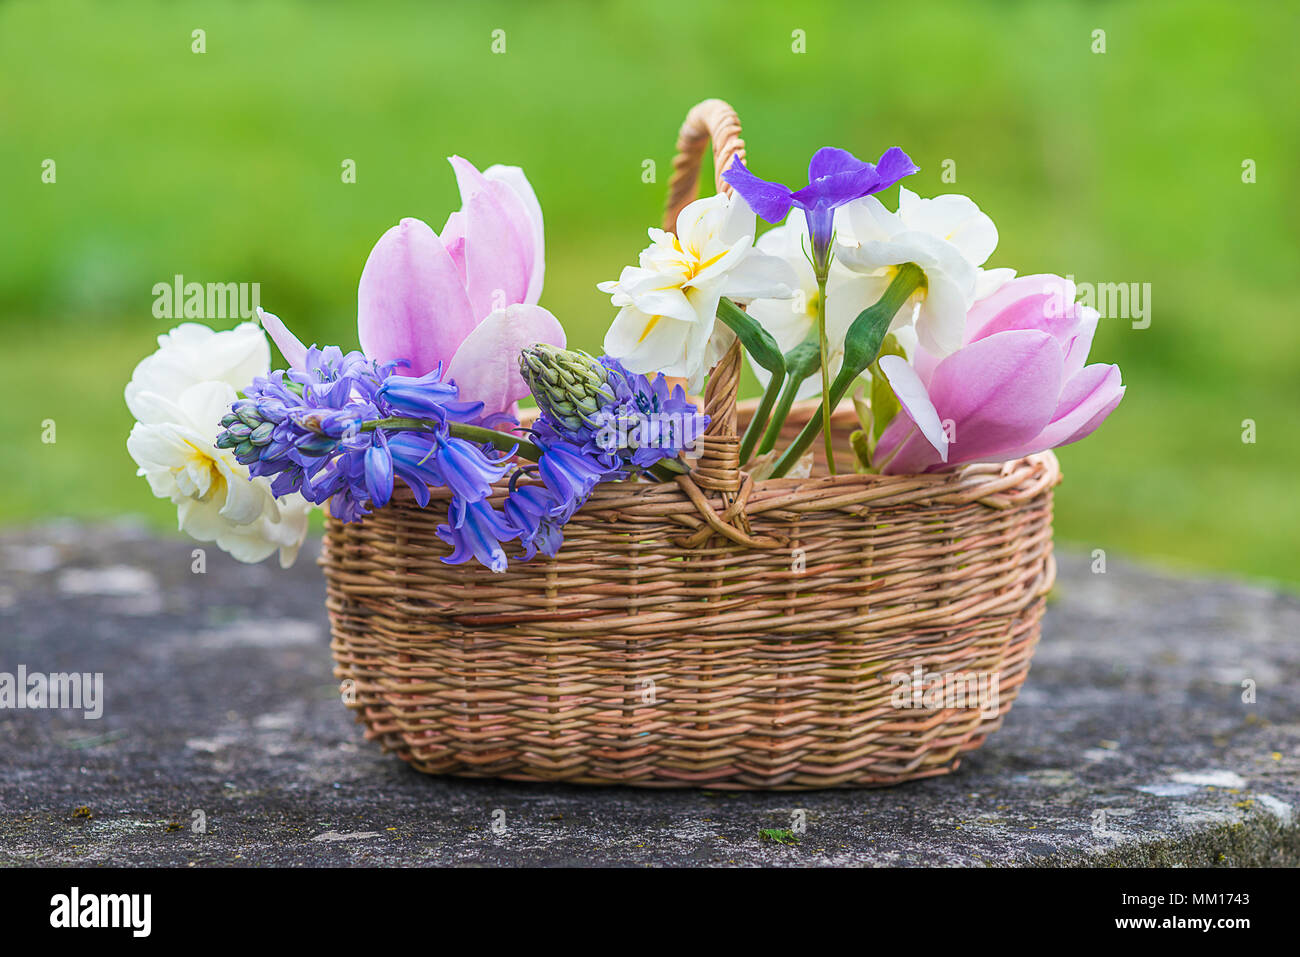 Wicker Basket With Bouquet Of Spring Flowers Pink Magnolia White